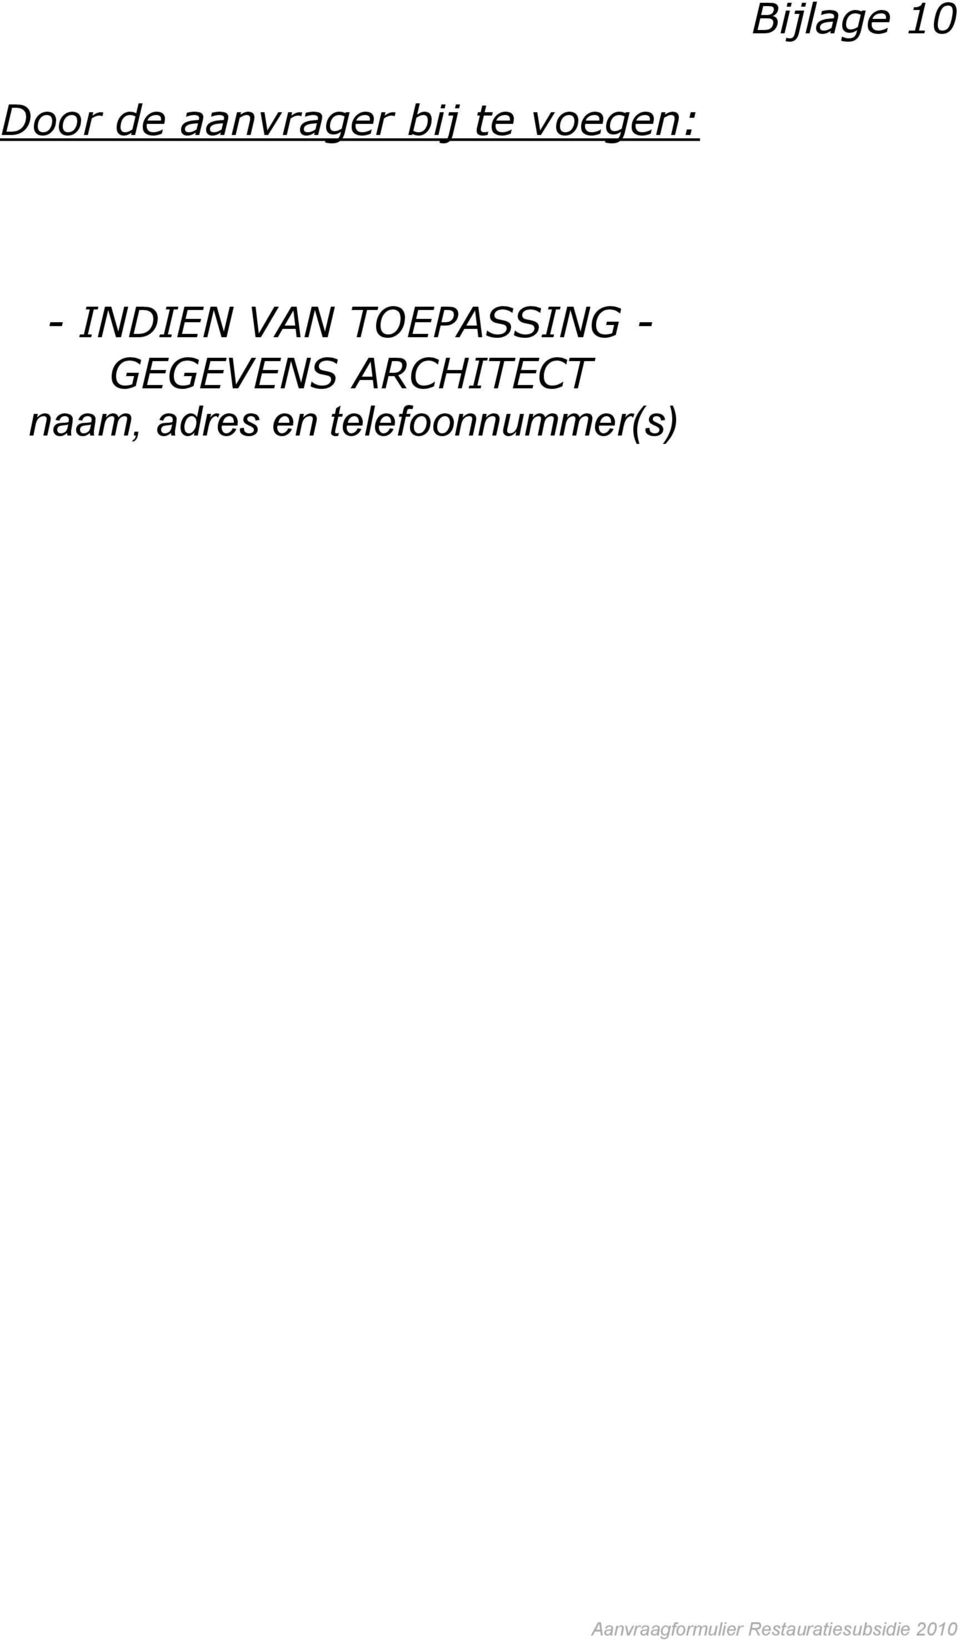 GEGEVENS ARCHITECT